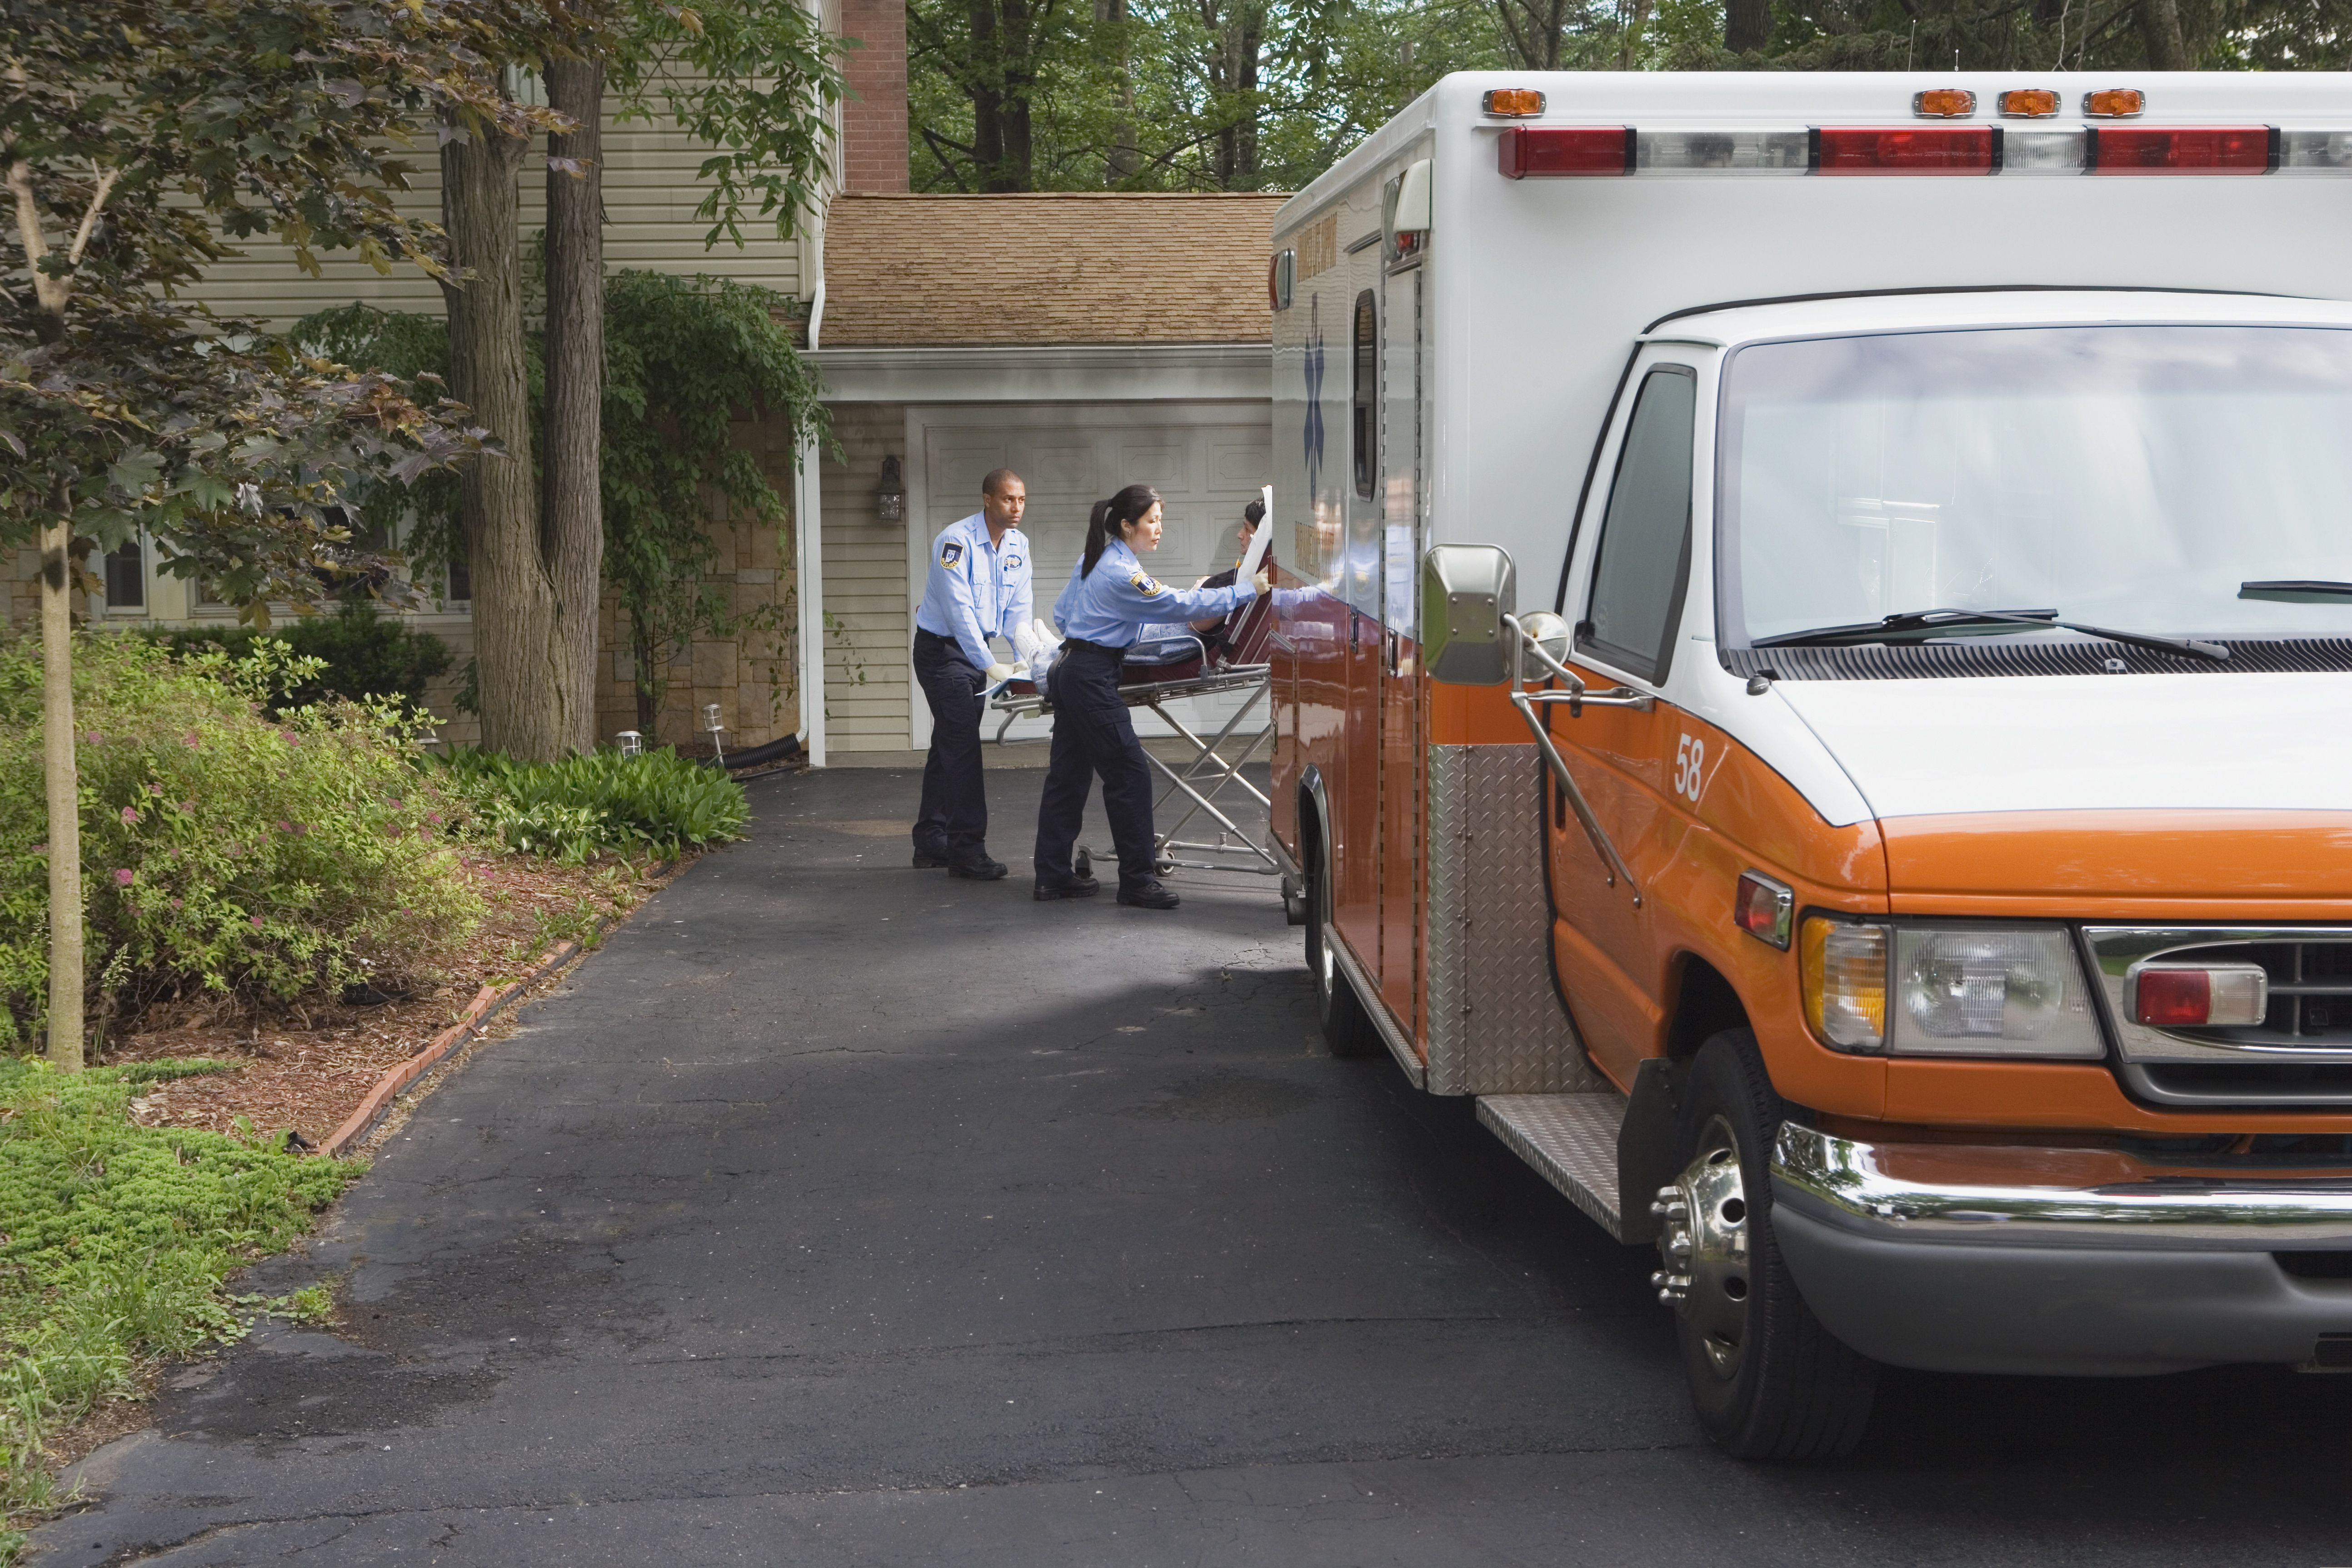 Paramedics putting person in ambulance in driveway